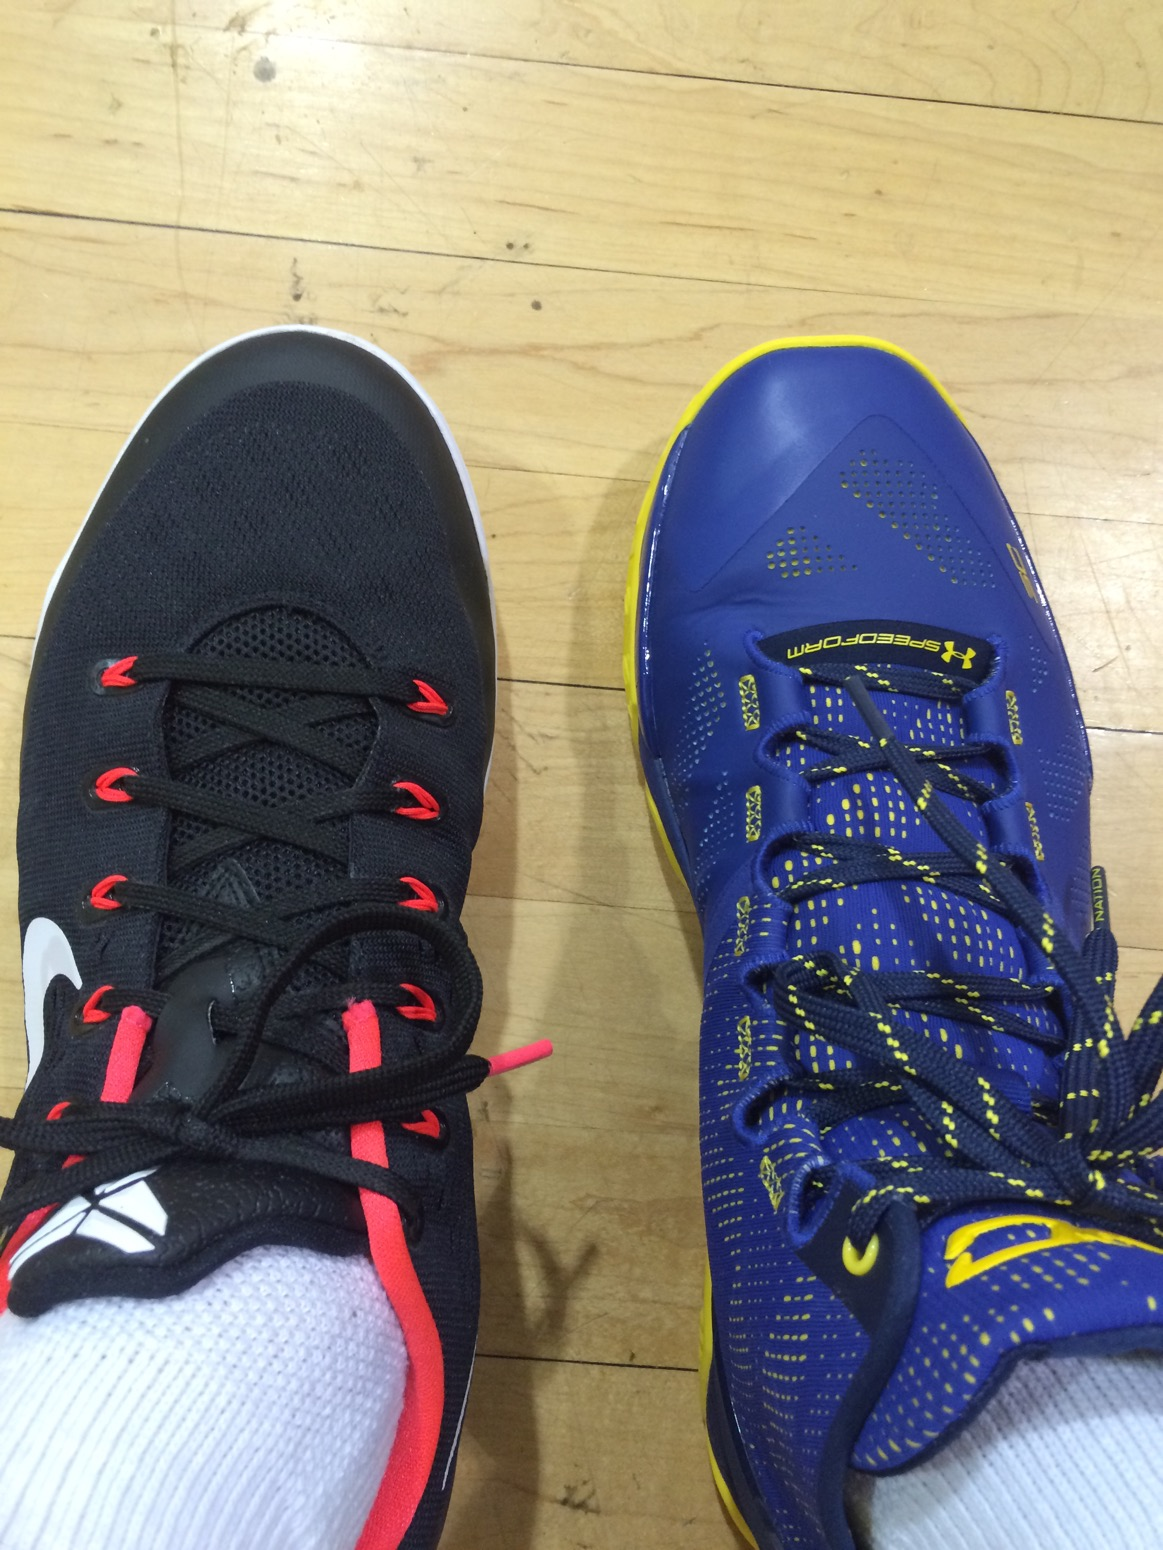 Under Armour Curry Two 2 Performance Review and Comparison | schwollo.com